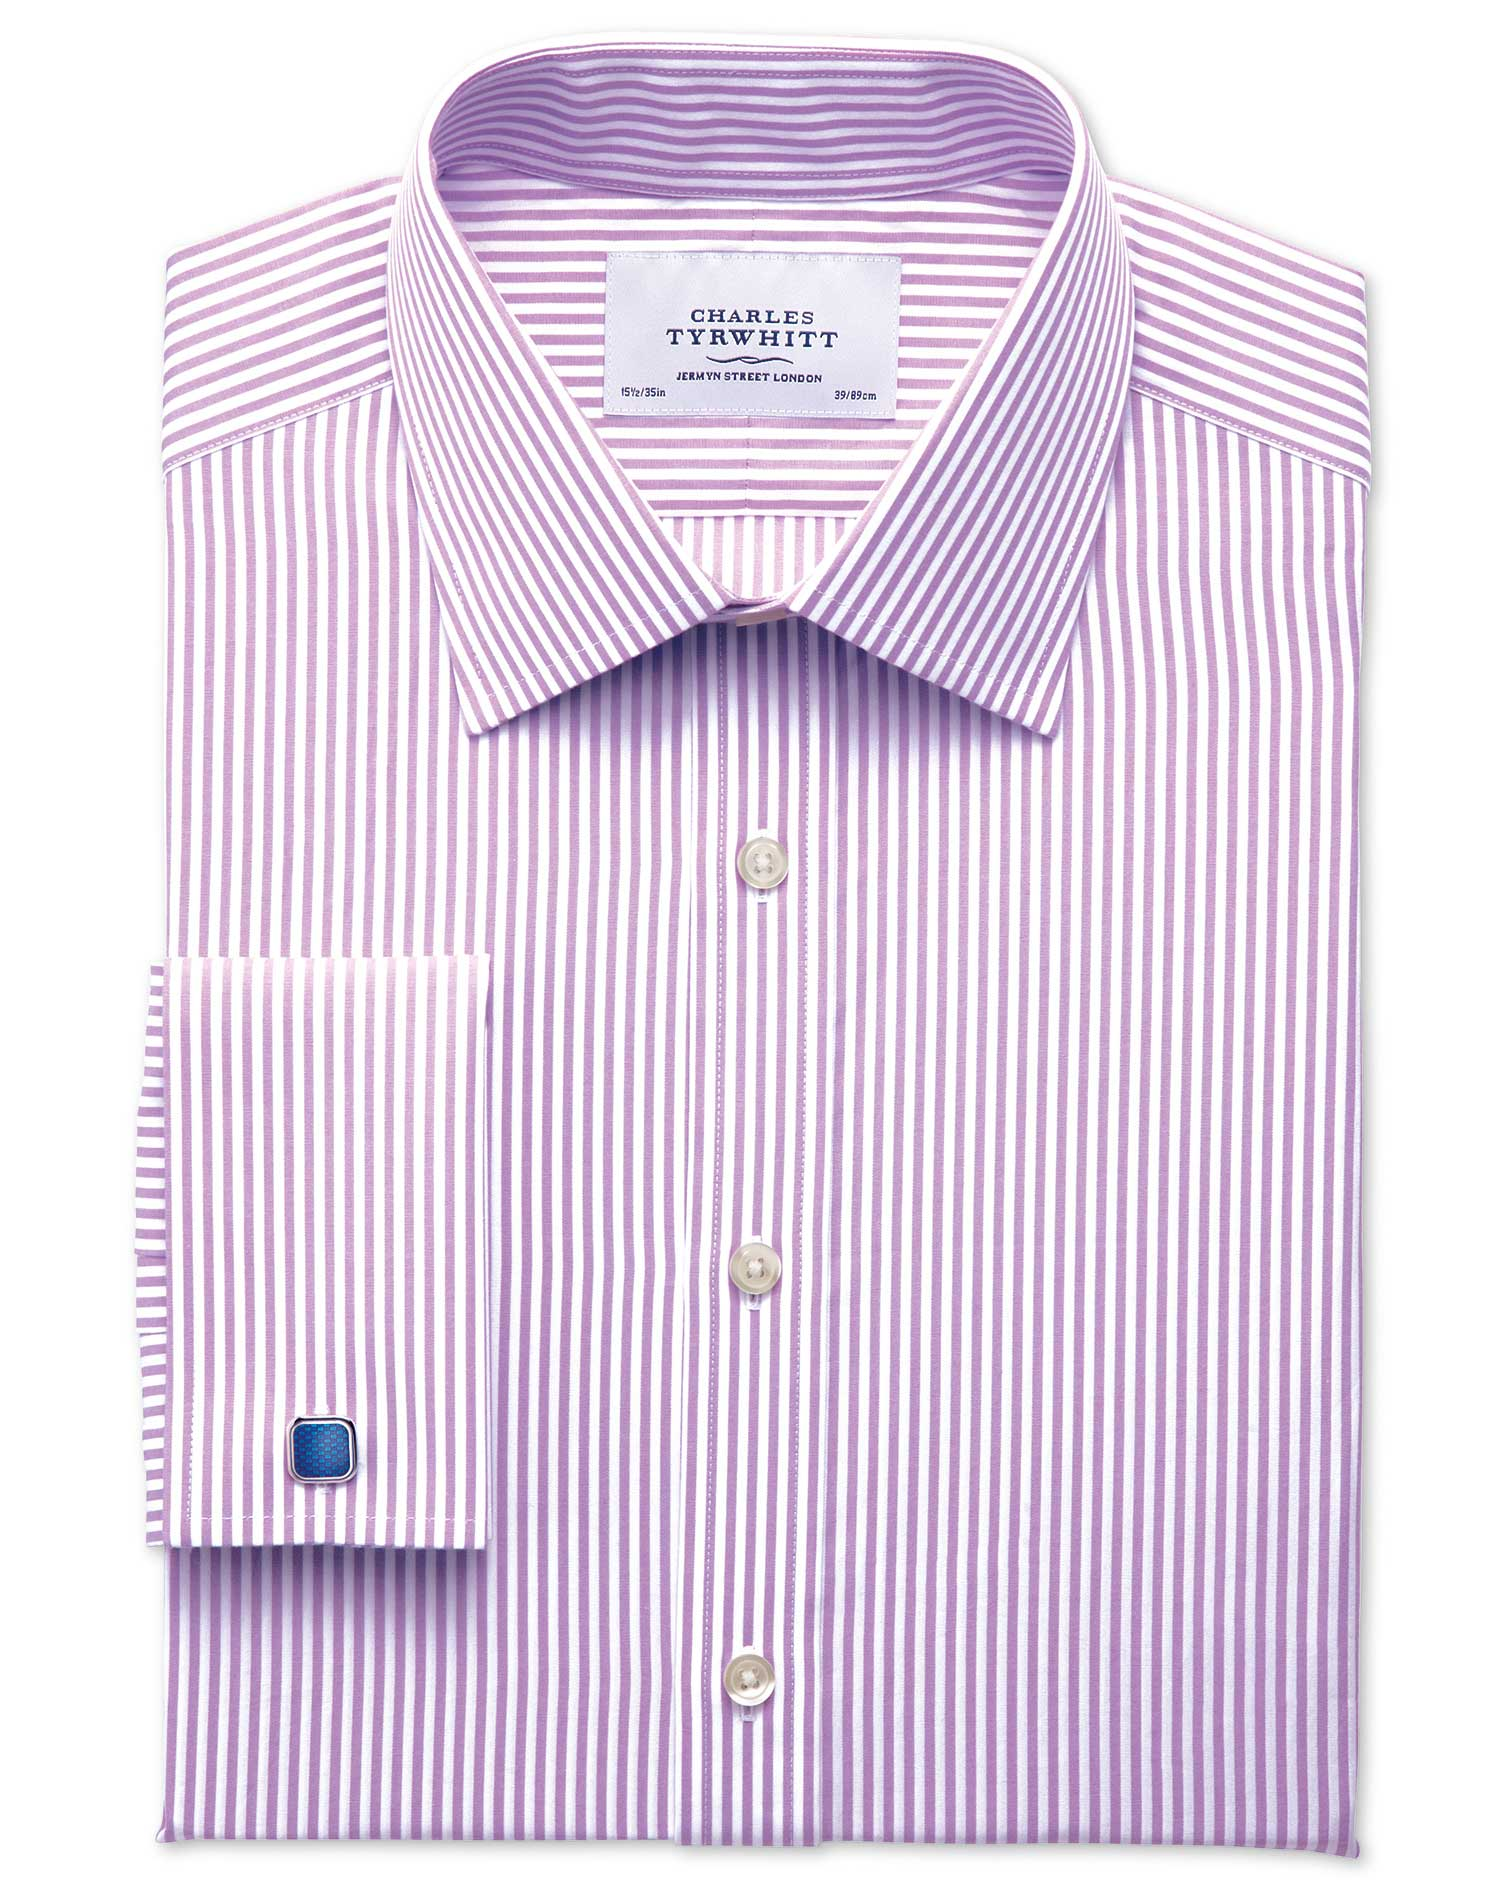 Extra Slim Fit Bengal Stripe Lilac Cotton Formal Shirt Single Cuff Size 17/35 by Charles Tyrwhitt